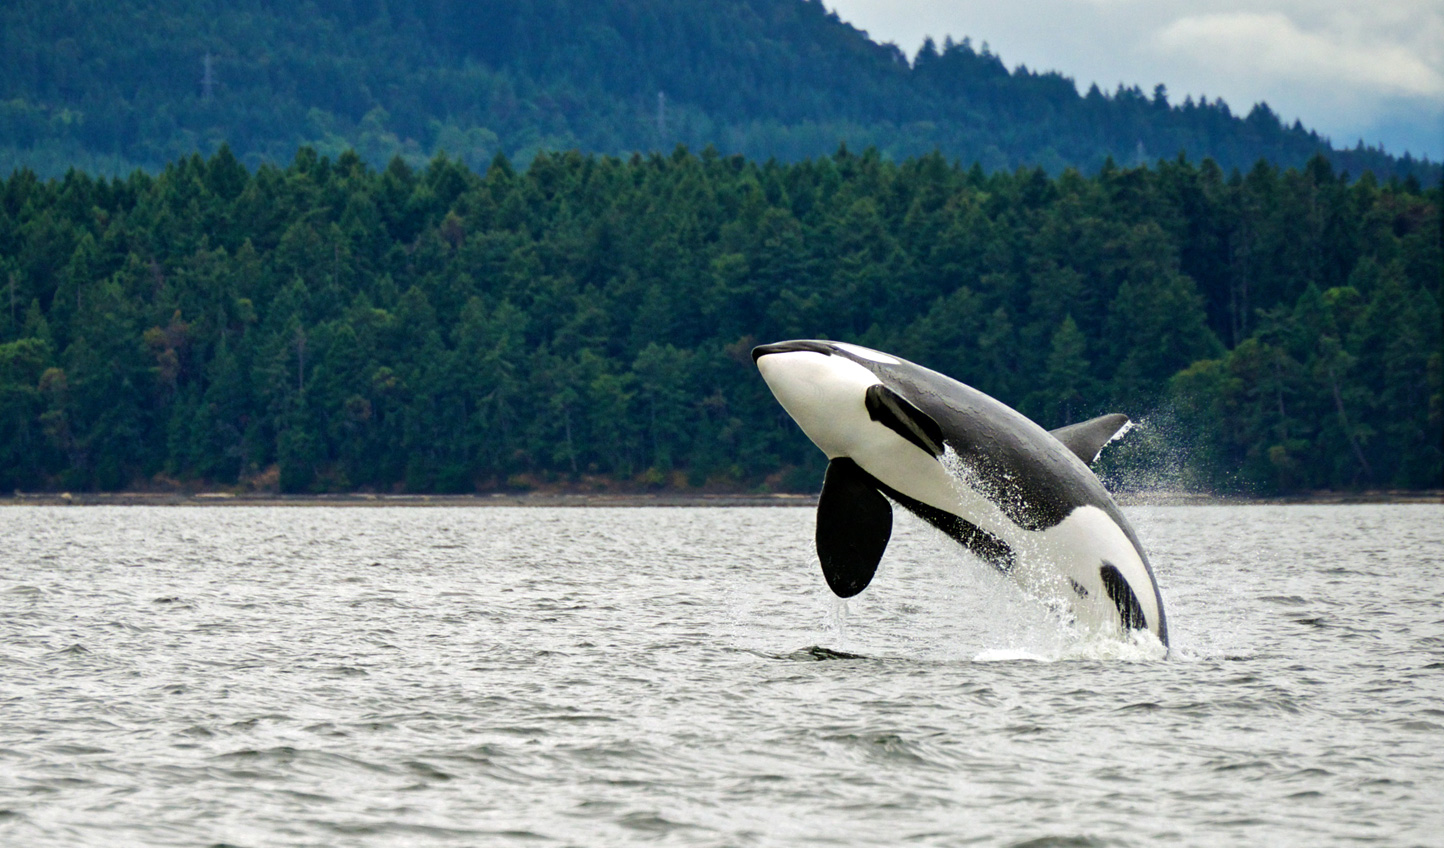 Head out in a zodiac and watch as whales breach before your eyes